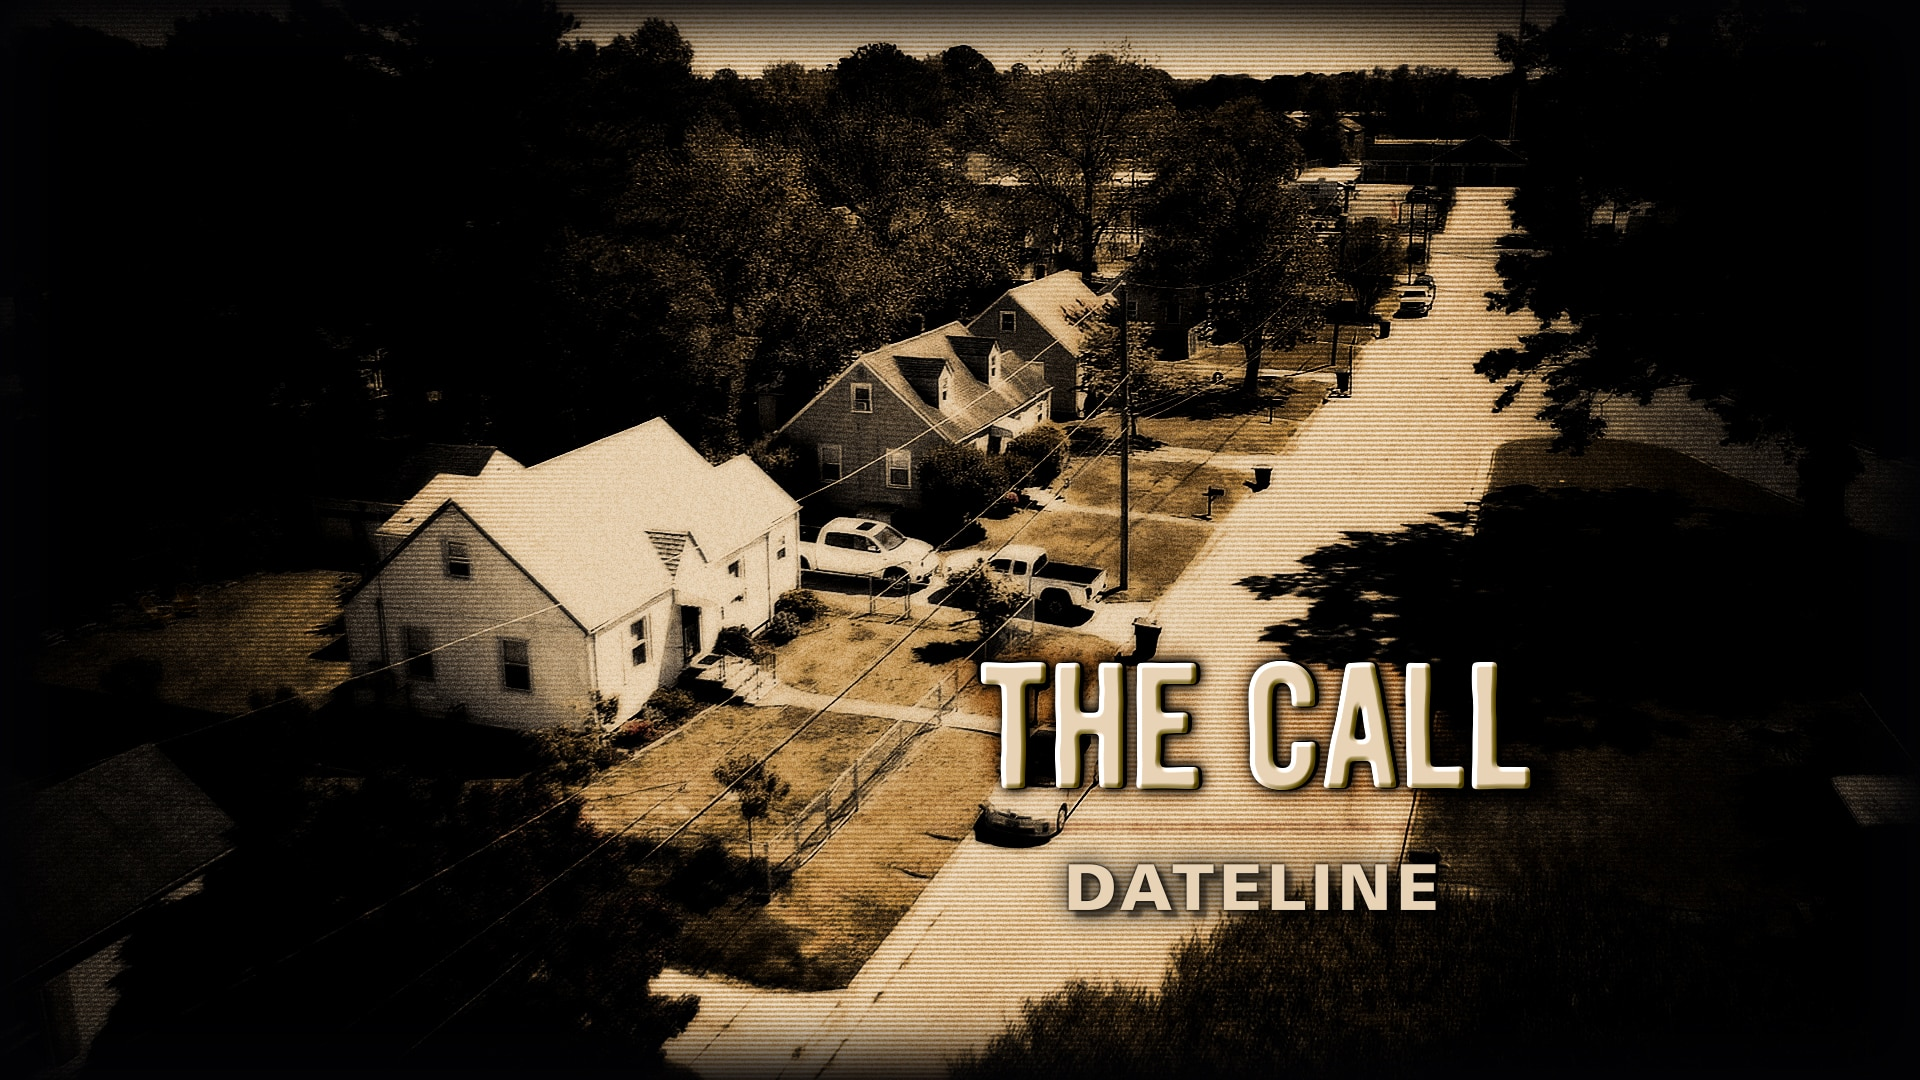 Watch Dateline Episode: The Call